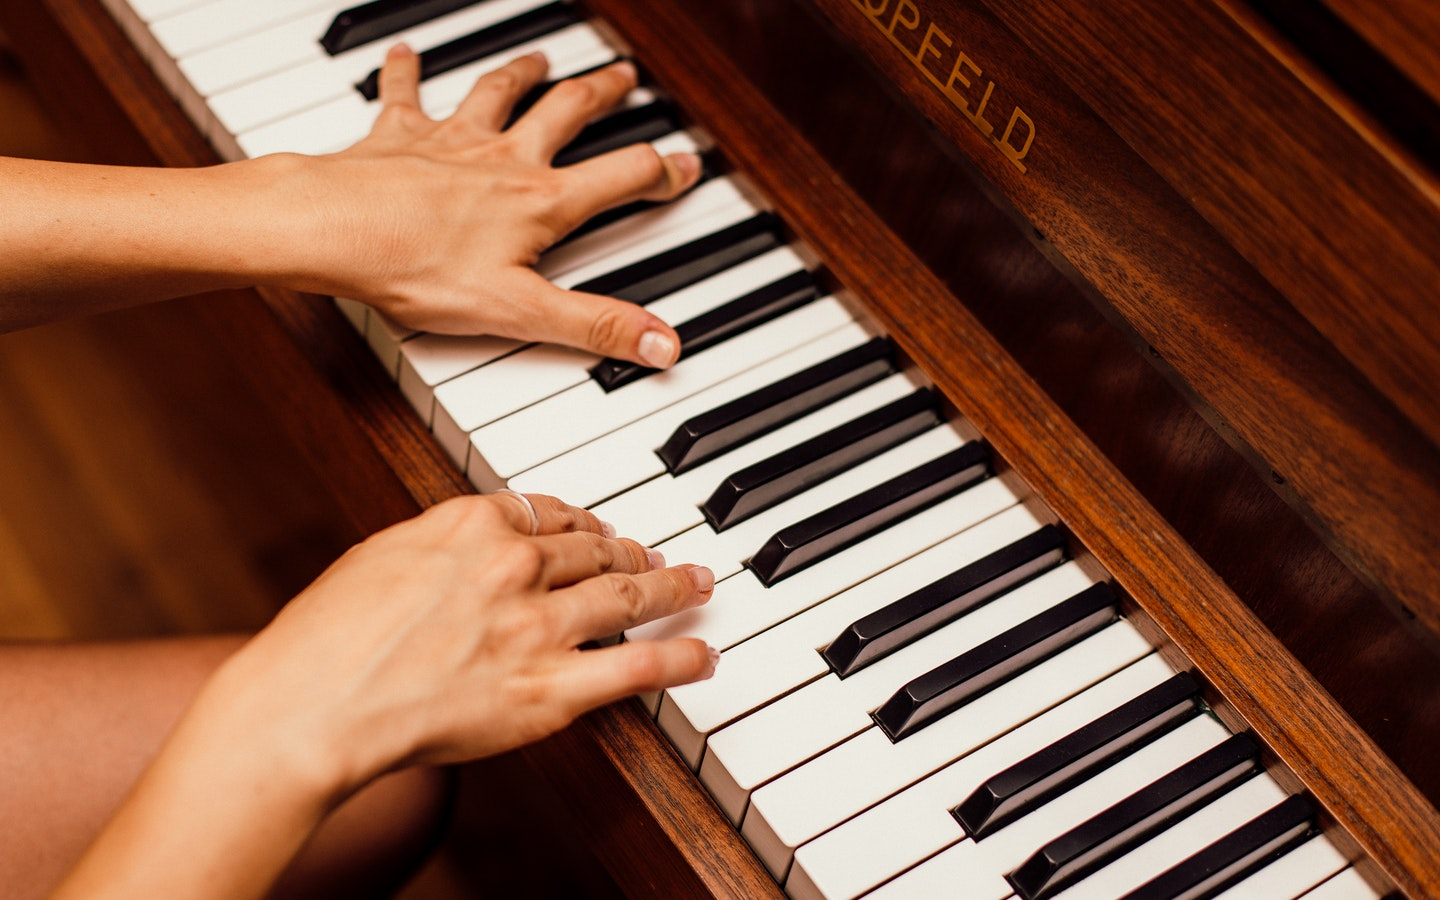 A person playing a piano with two hands